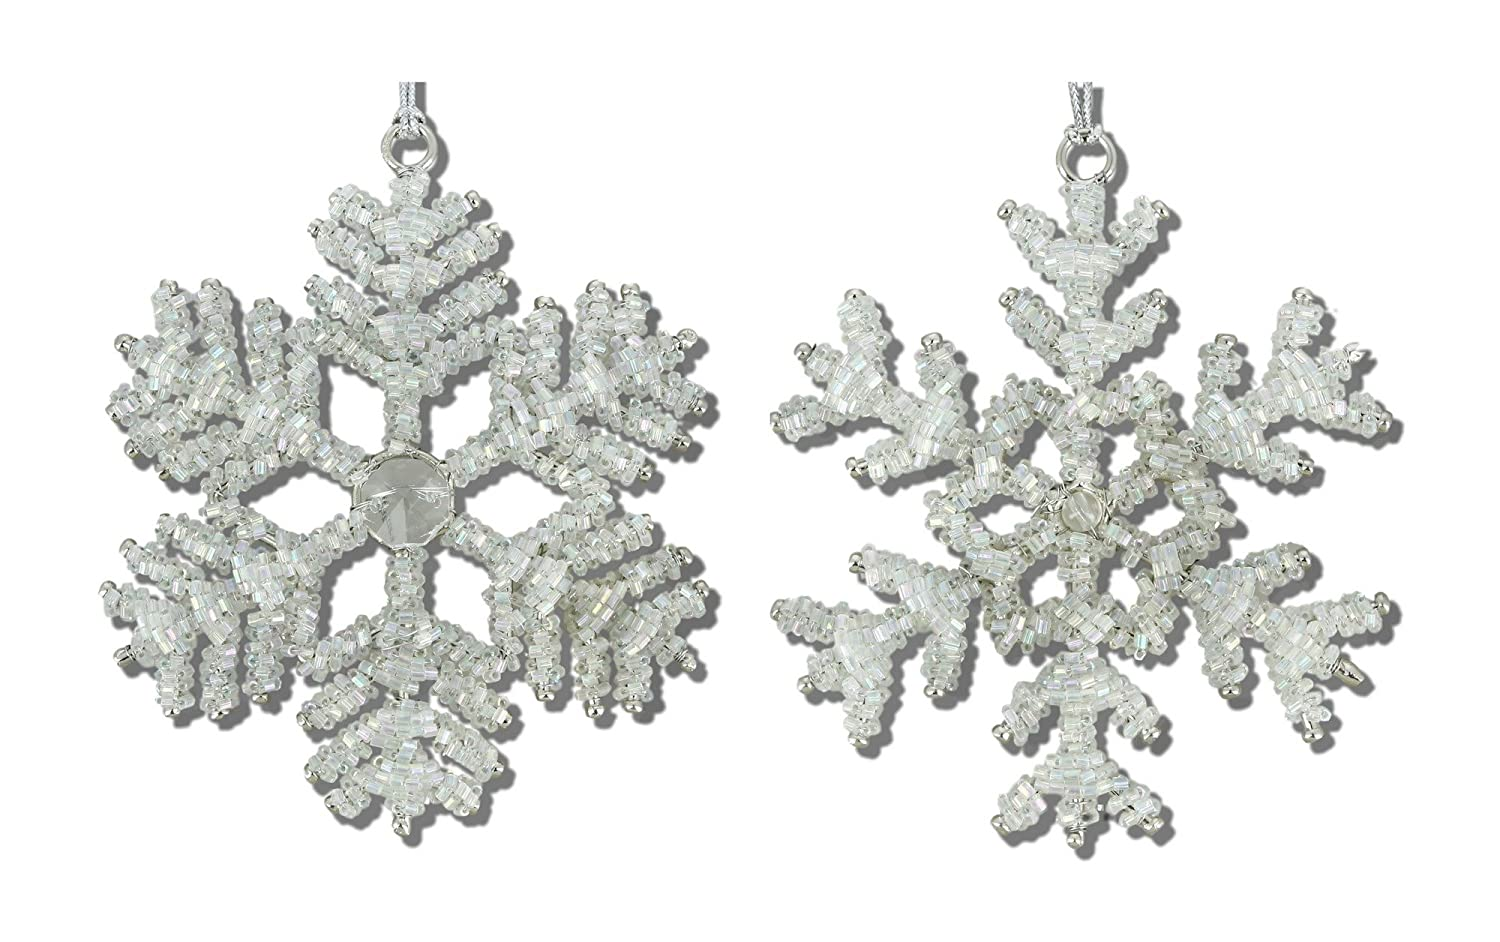 ShalinIndia Handmade Iron and Glass Snowflake Ornaments,10 Different ...